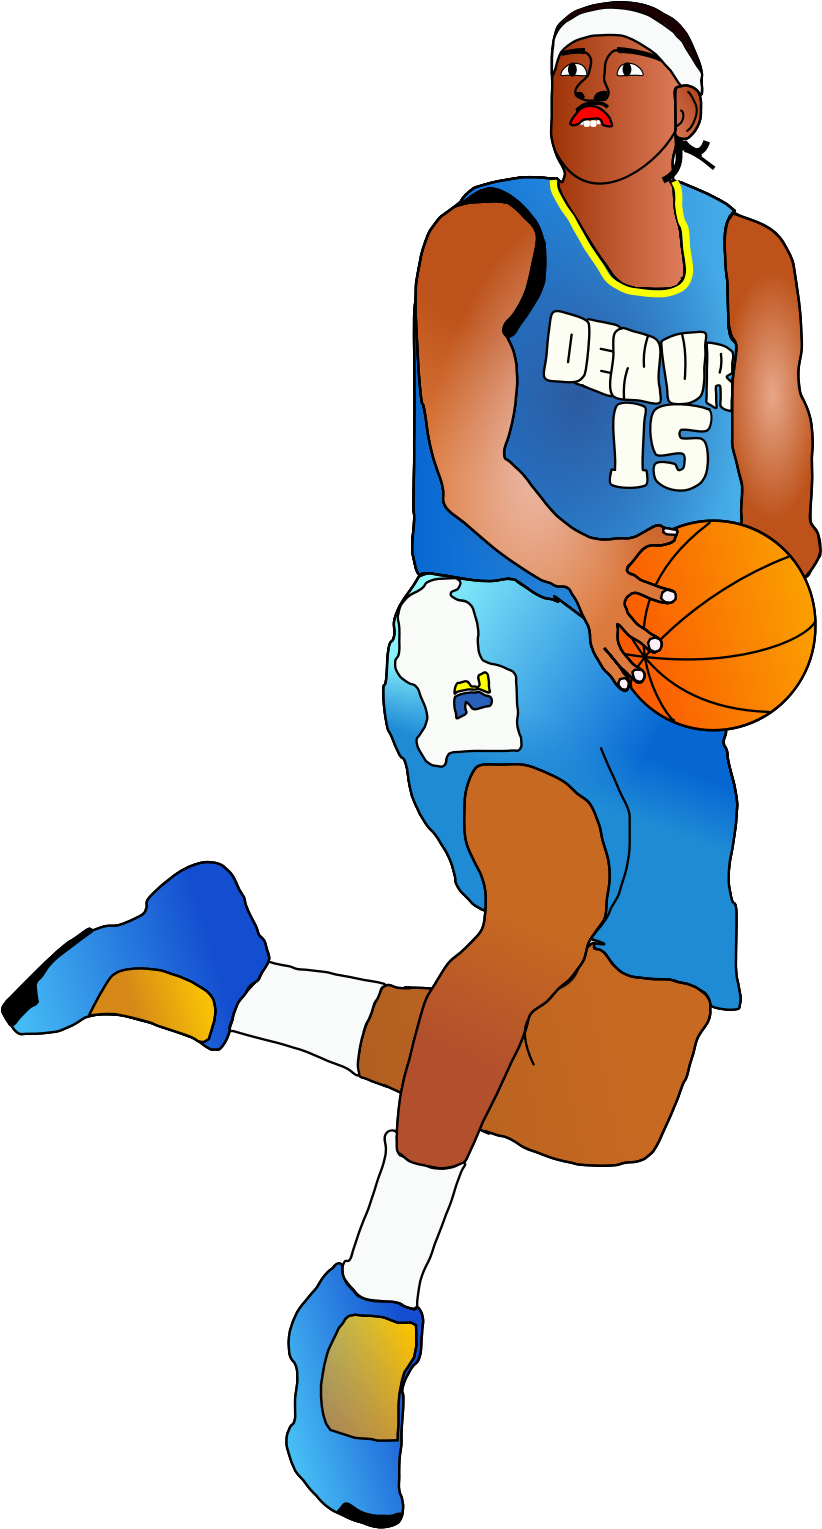 Male clipart animated. Basketball player